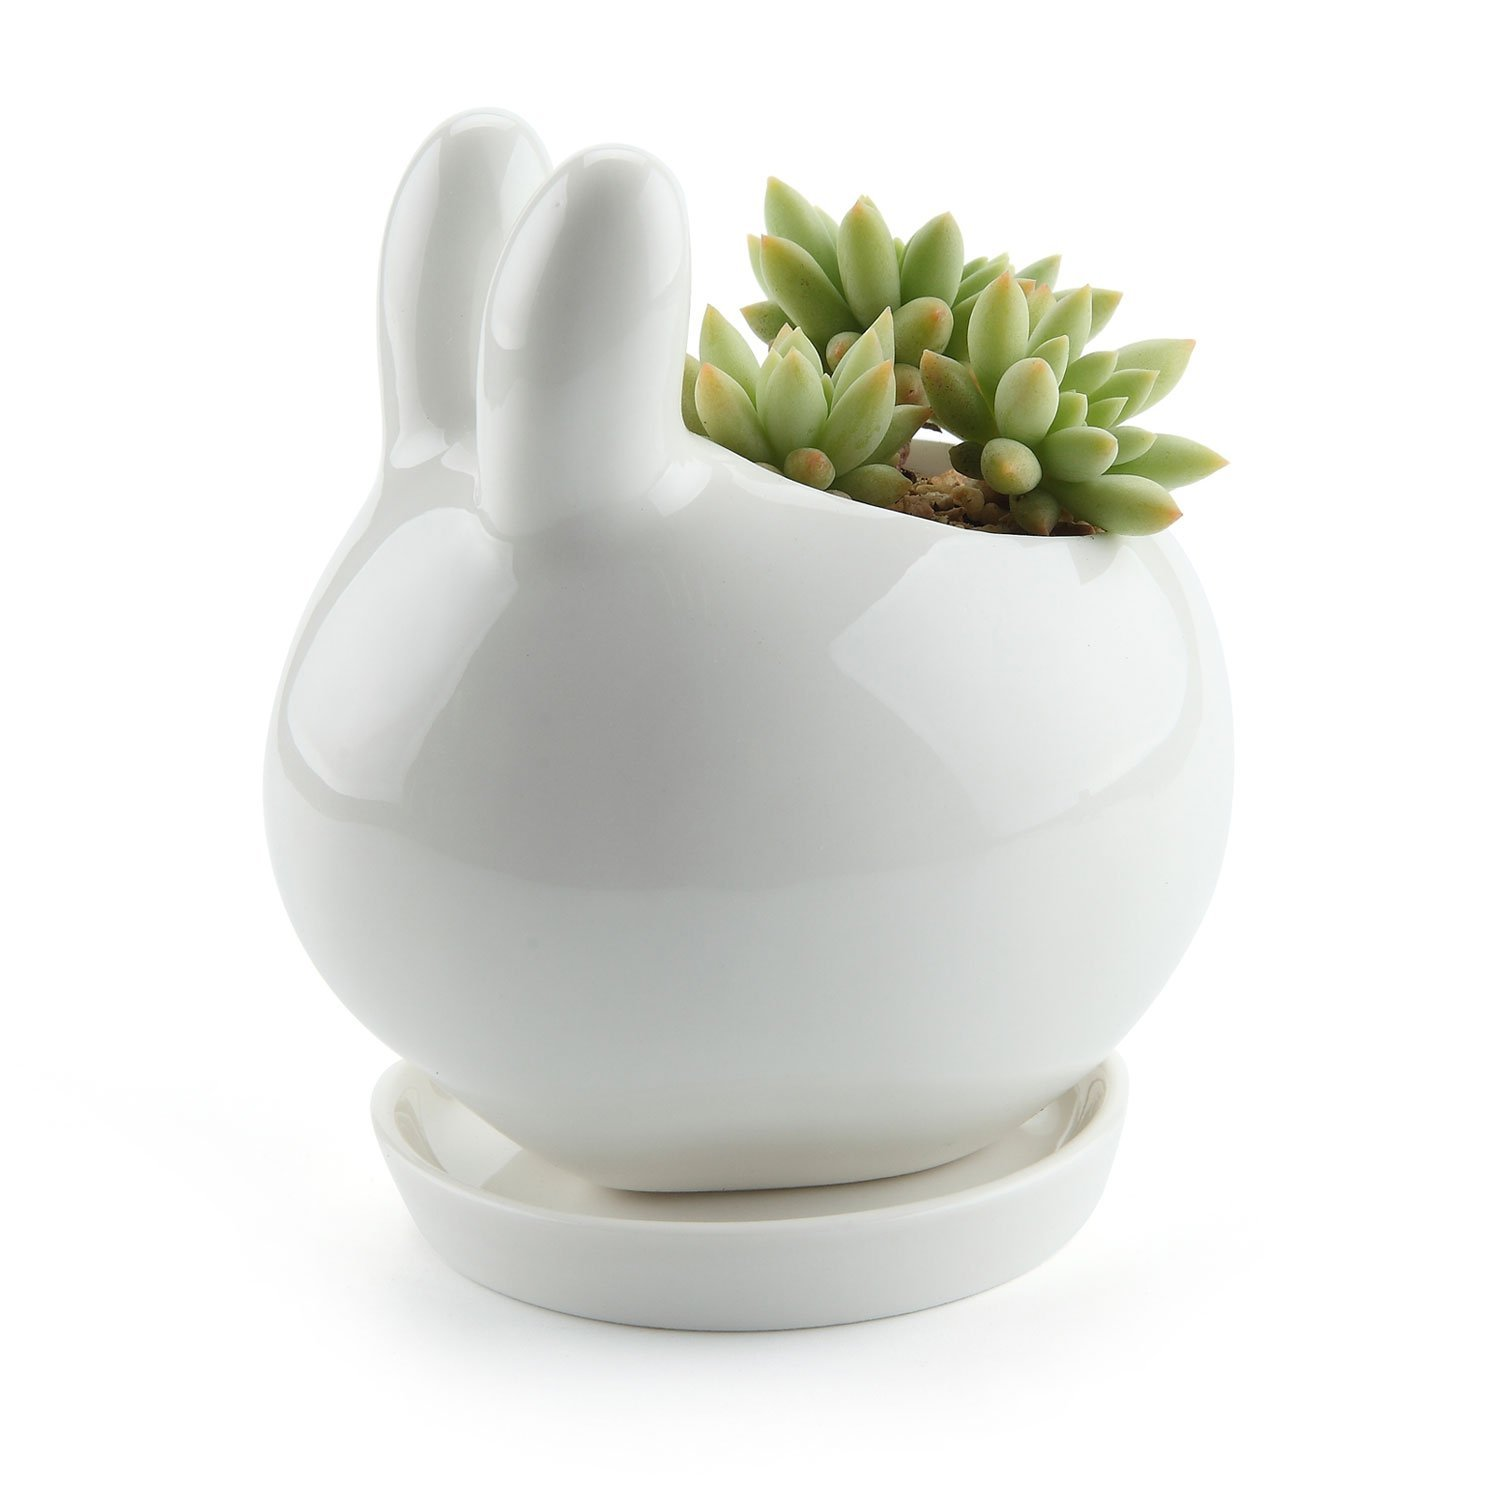 T4U Bunny Rabbit Design Ceramic Succulent Plant Pot/Cactus Flower Pots Container Porcelain Holder Planter Decoration with Round Tray - Pack of 1 by T4U